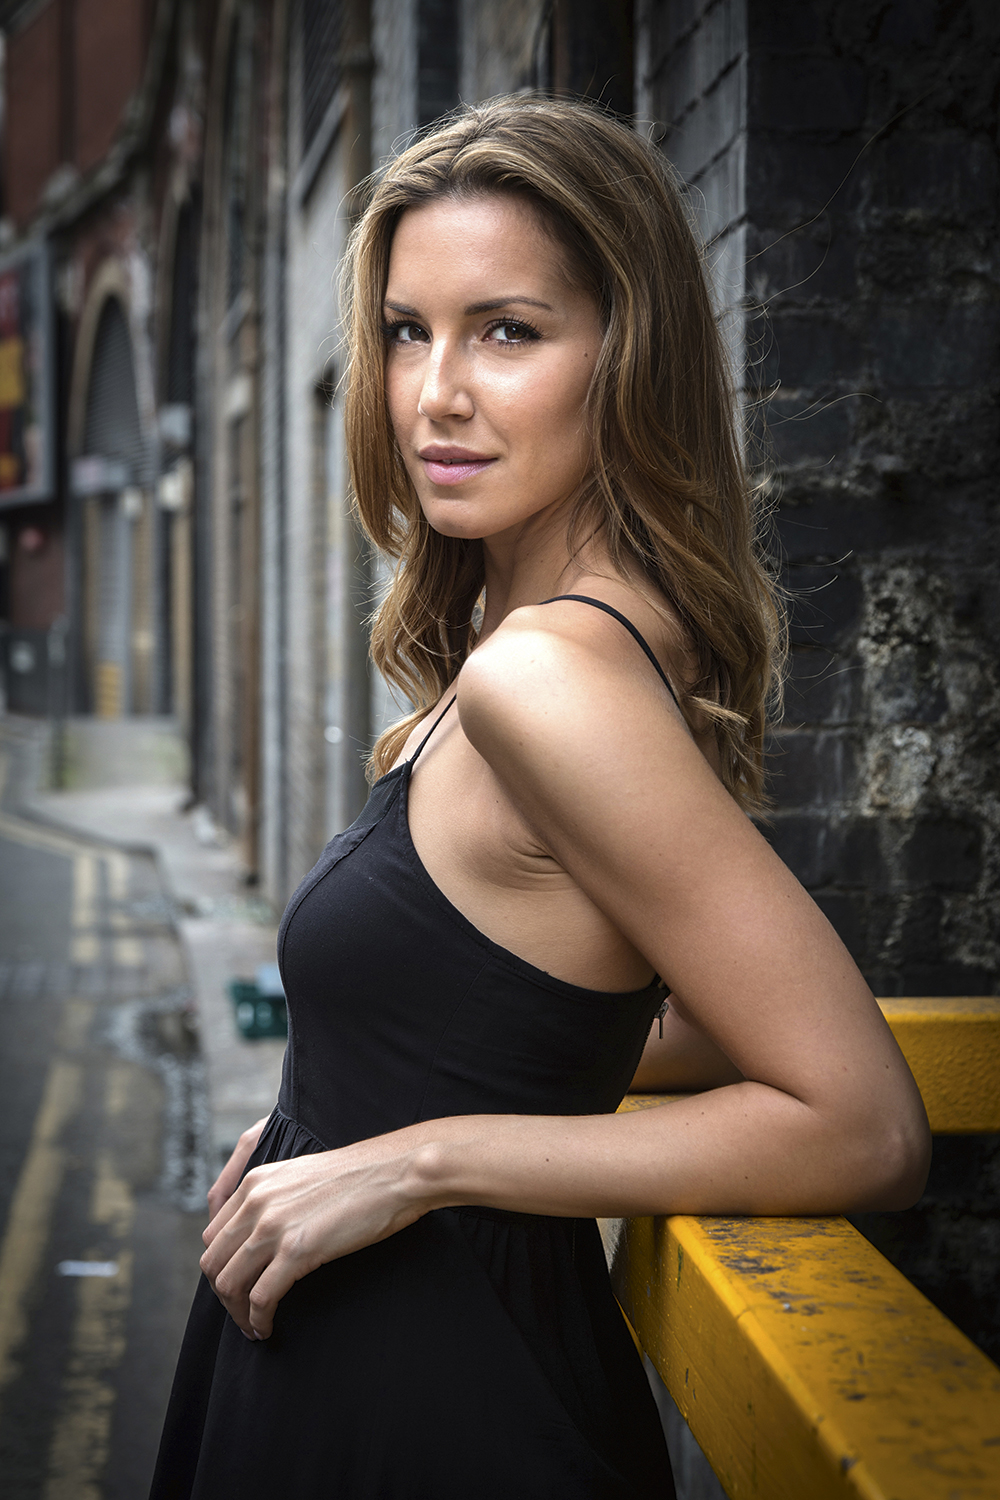 Master your camera: Shooting portraiture on the Canon EOS 5D Mark